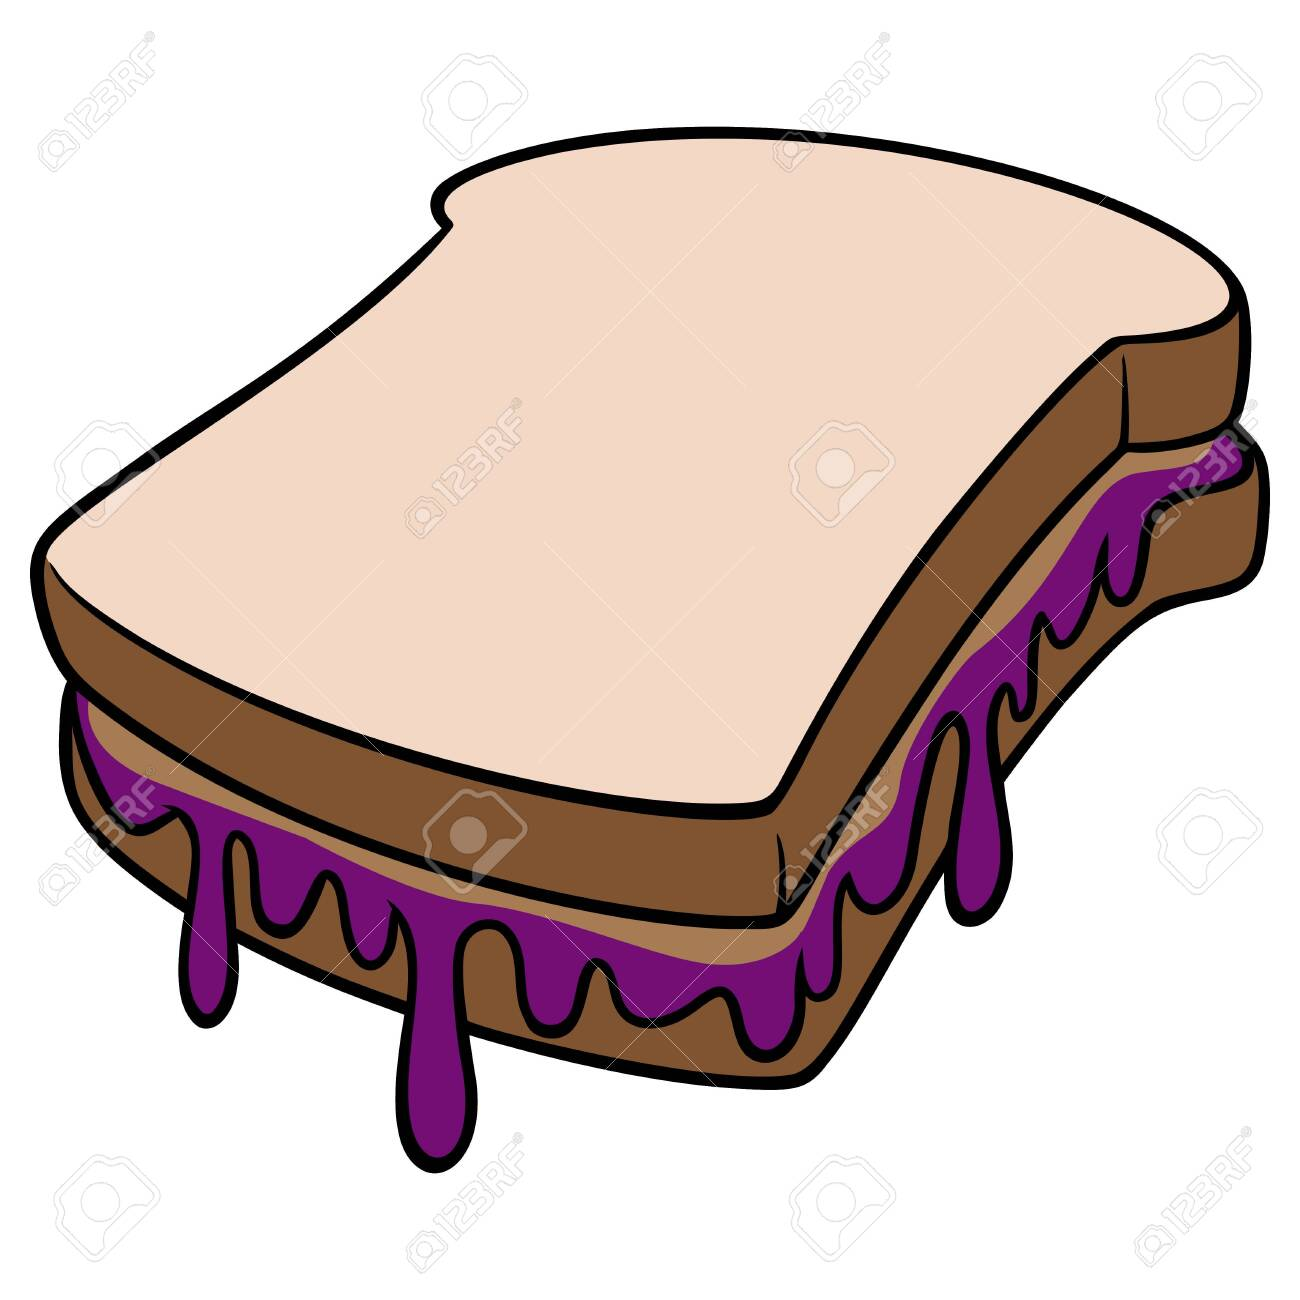 peanut butter and jelly a cartoon illustration of a peanut royalty free cliparts vectors and stock illustration image 139799901 peanut butter and jelly a cartoon illustration of a peanut